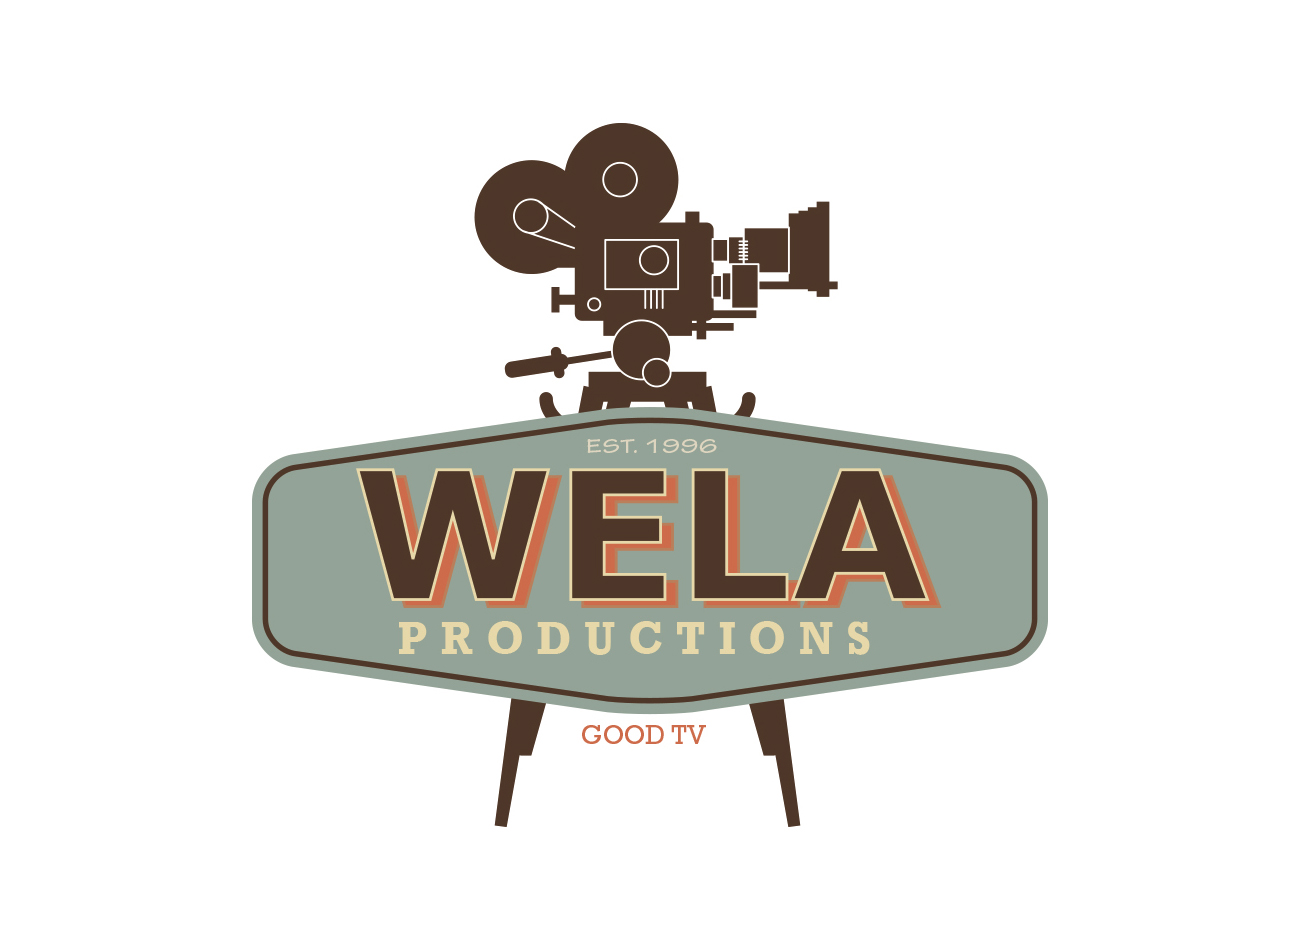 wela-productions-company-logo-by-agent-orange-design-south-africa-johannesburg.jpg